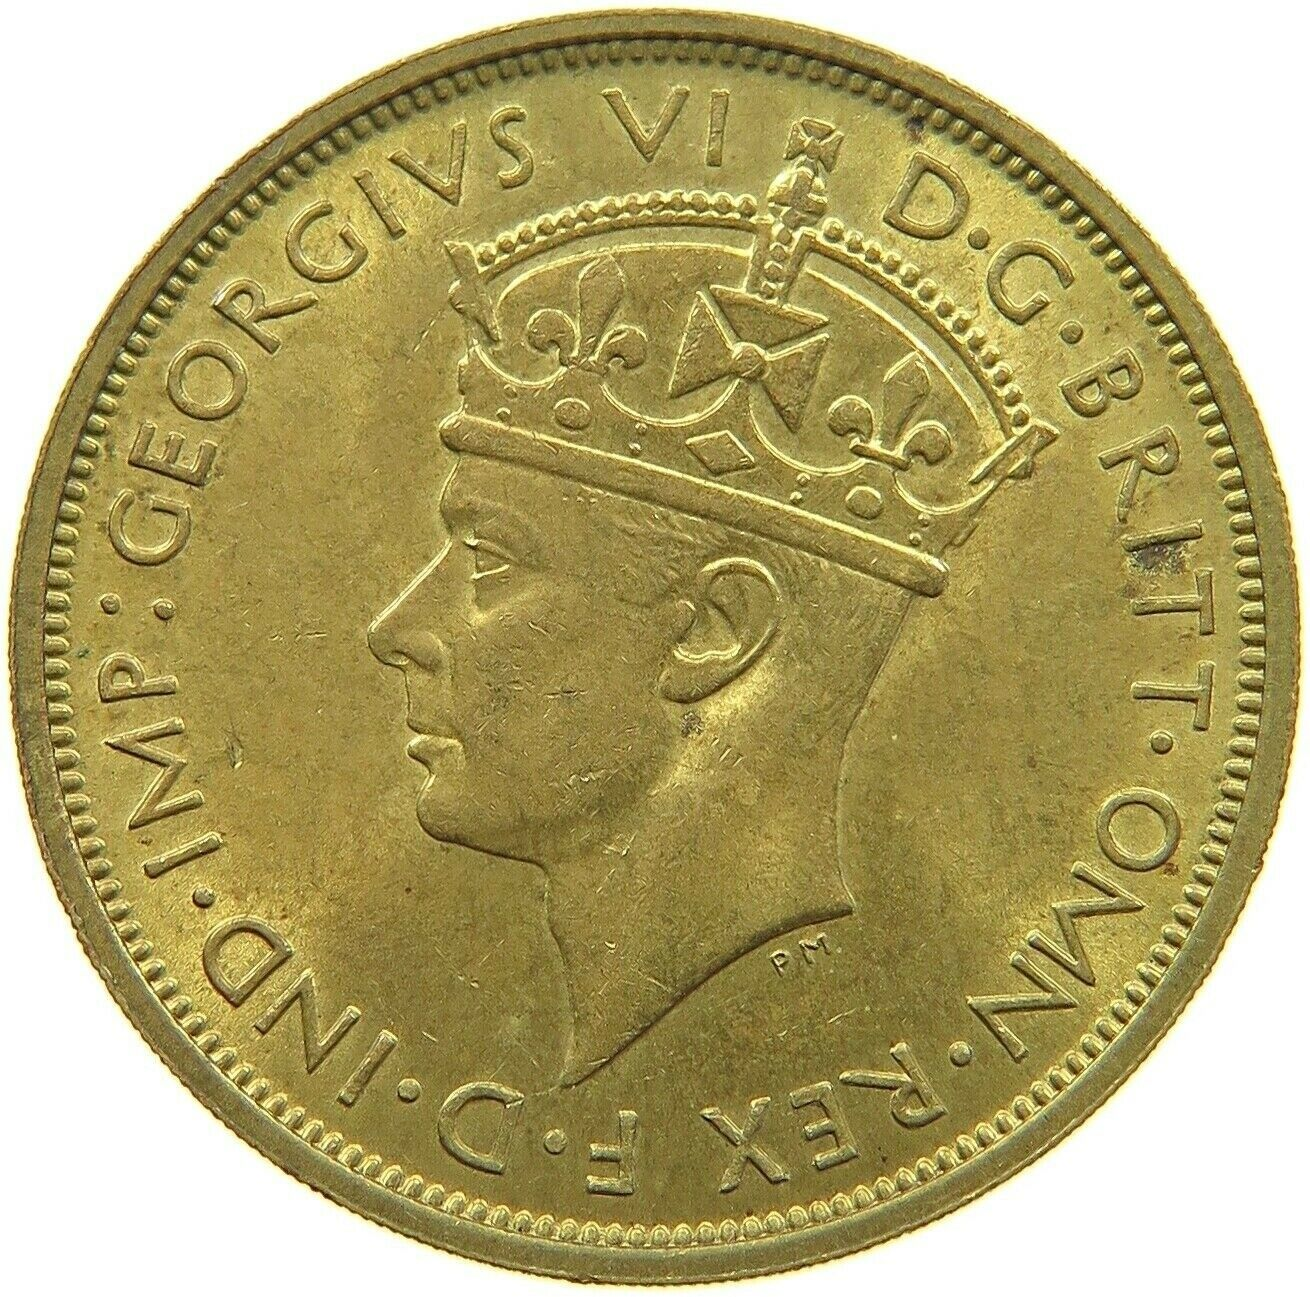 Two Shillings 1939: Photo Coin, British West Africa, George VI, 2 Shillings, 1939